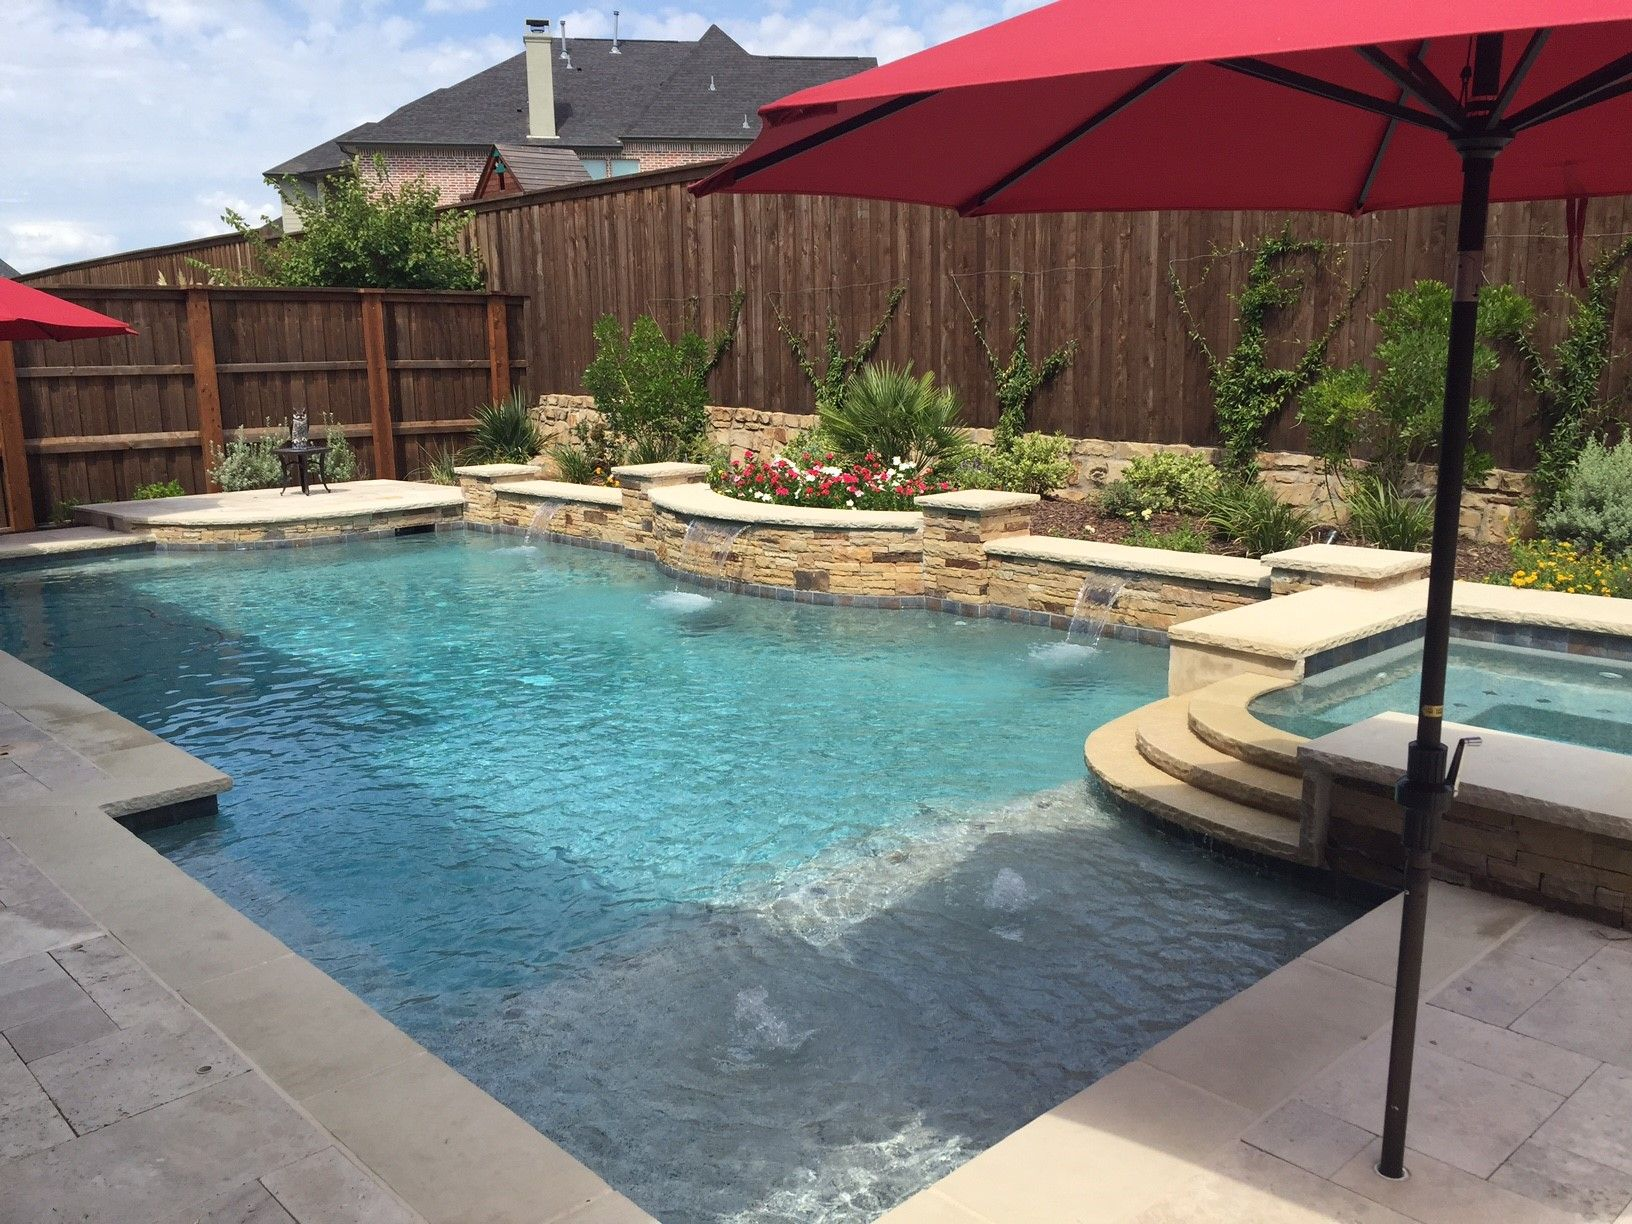 Cool Backyard Pool Designs for Your Outdoor Space: Backyard Pool Designs | Pool Cabana Ideas | Inground Swimming Pool Designs